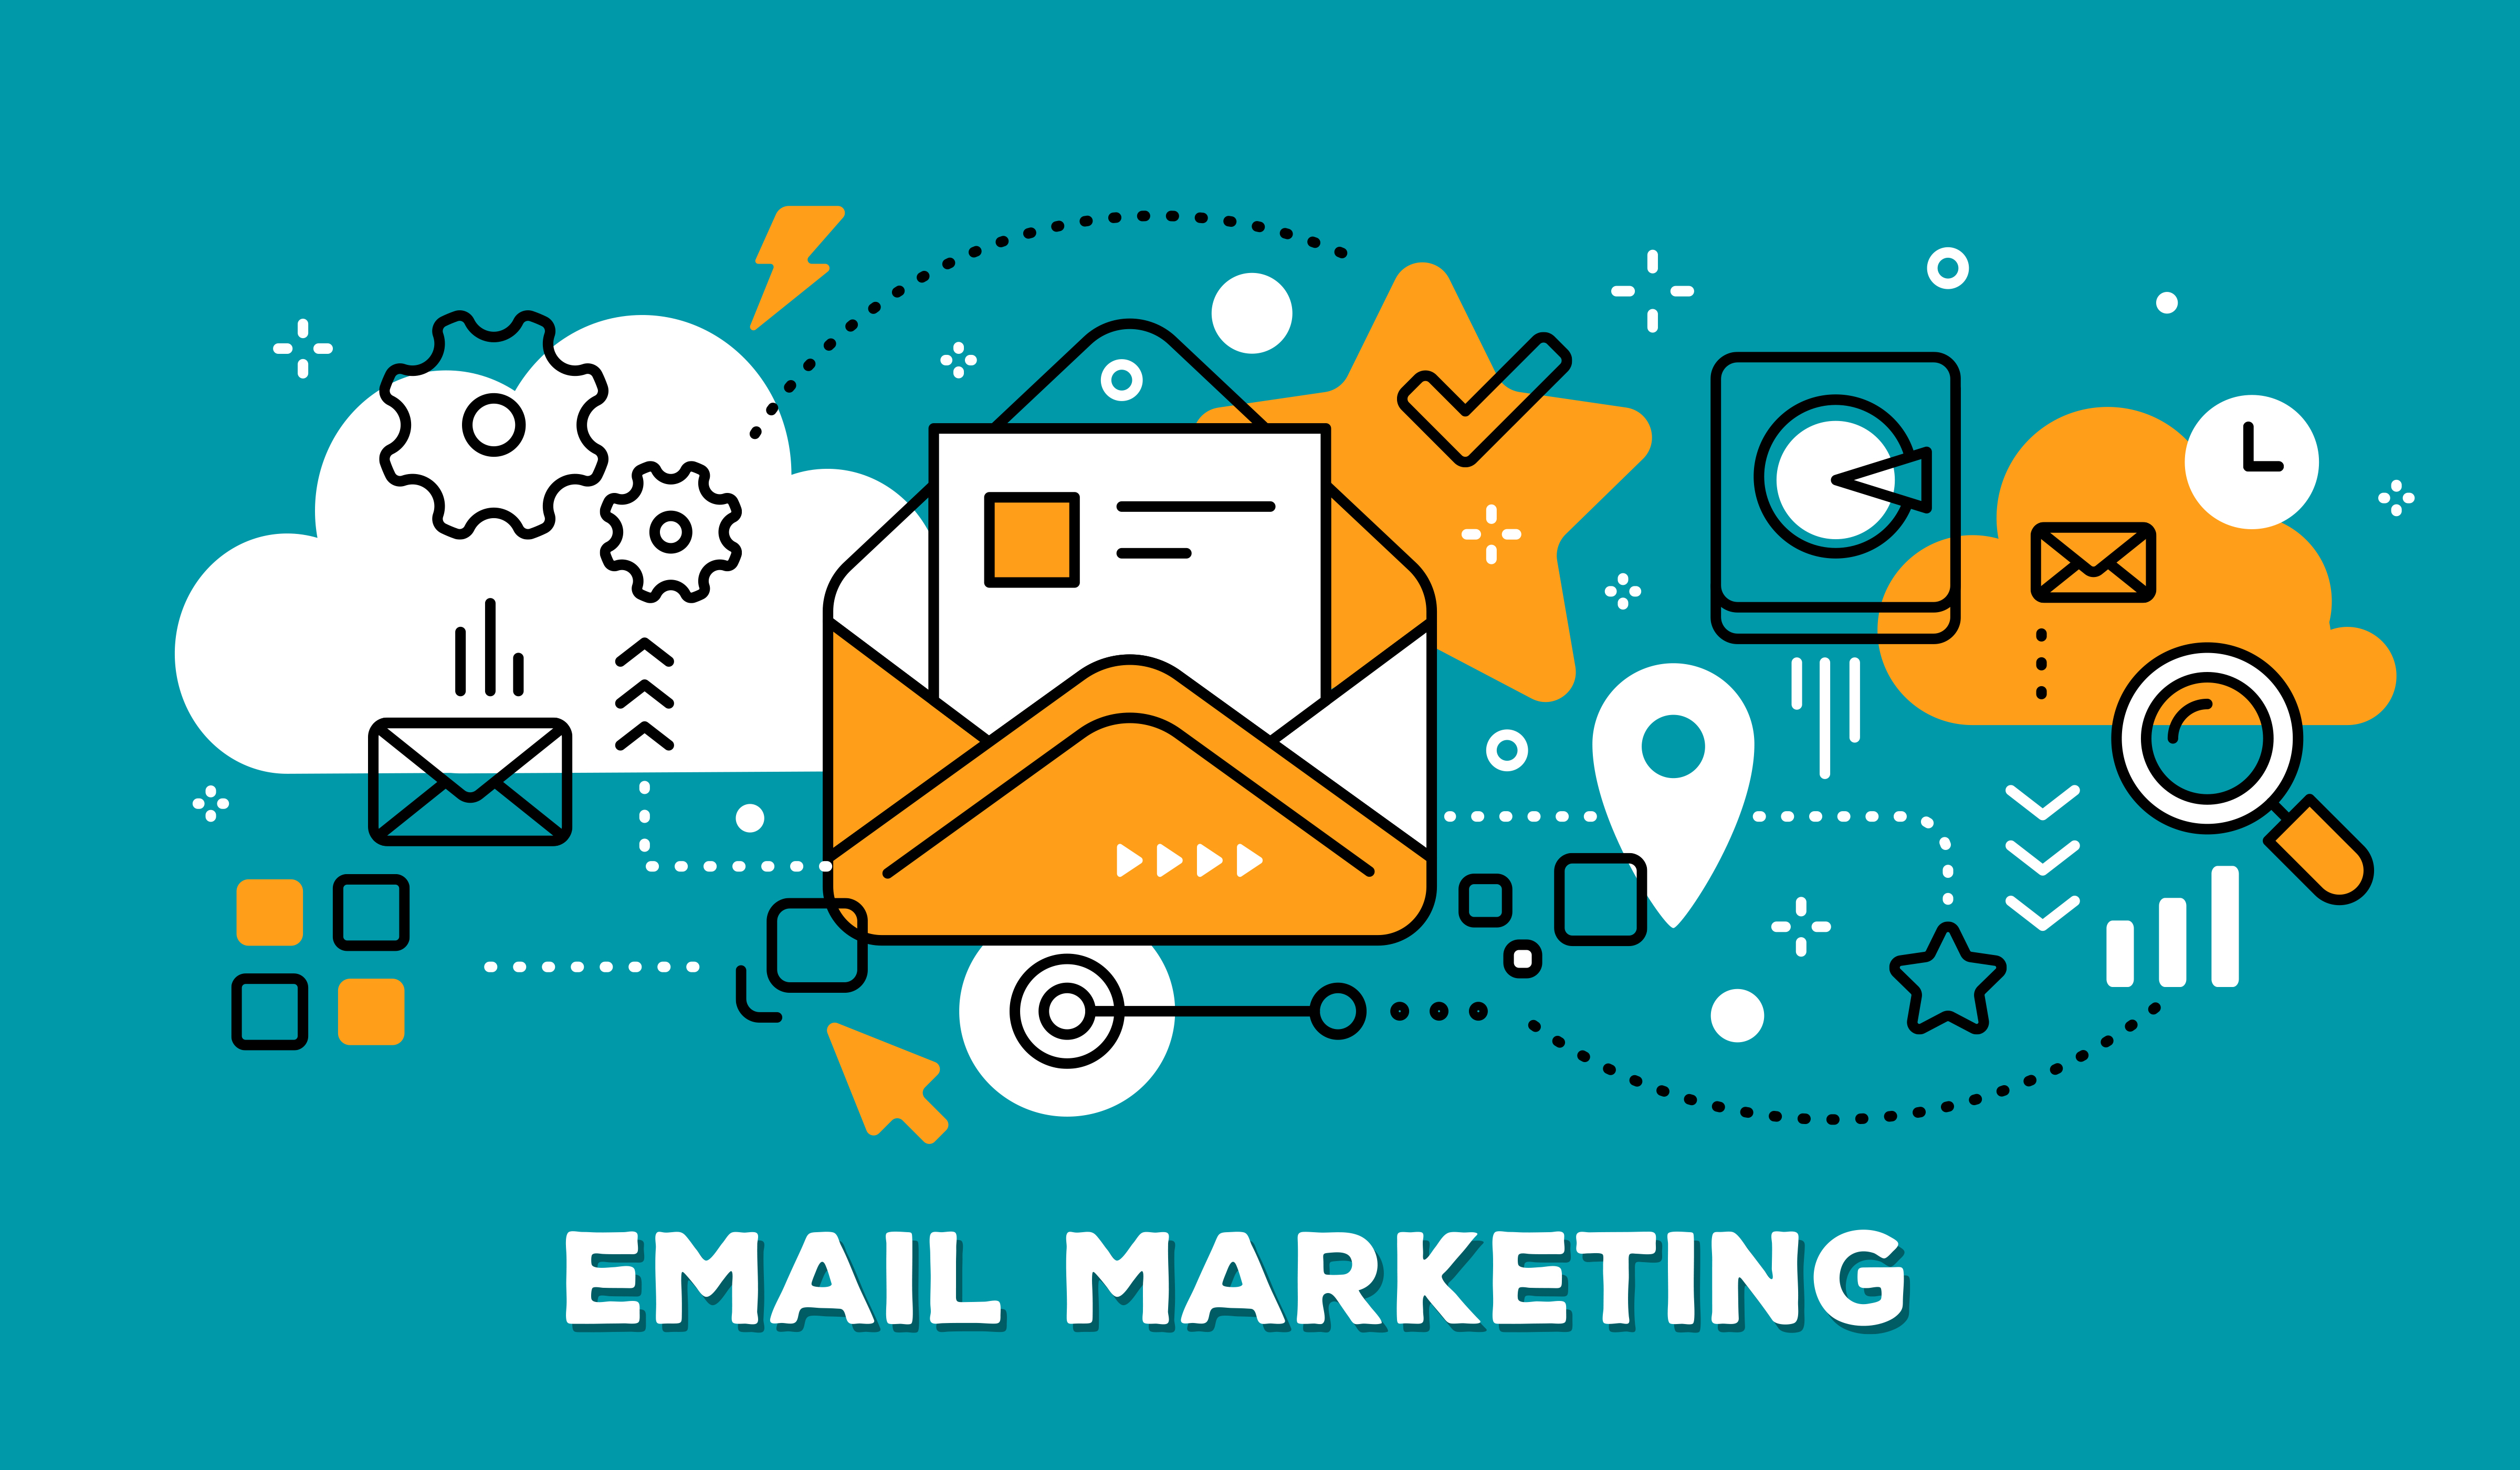 Data e-mail marketing USA 960 millions e-mail 2018 for leads.